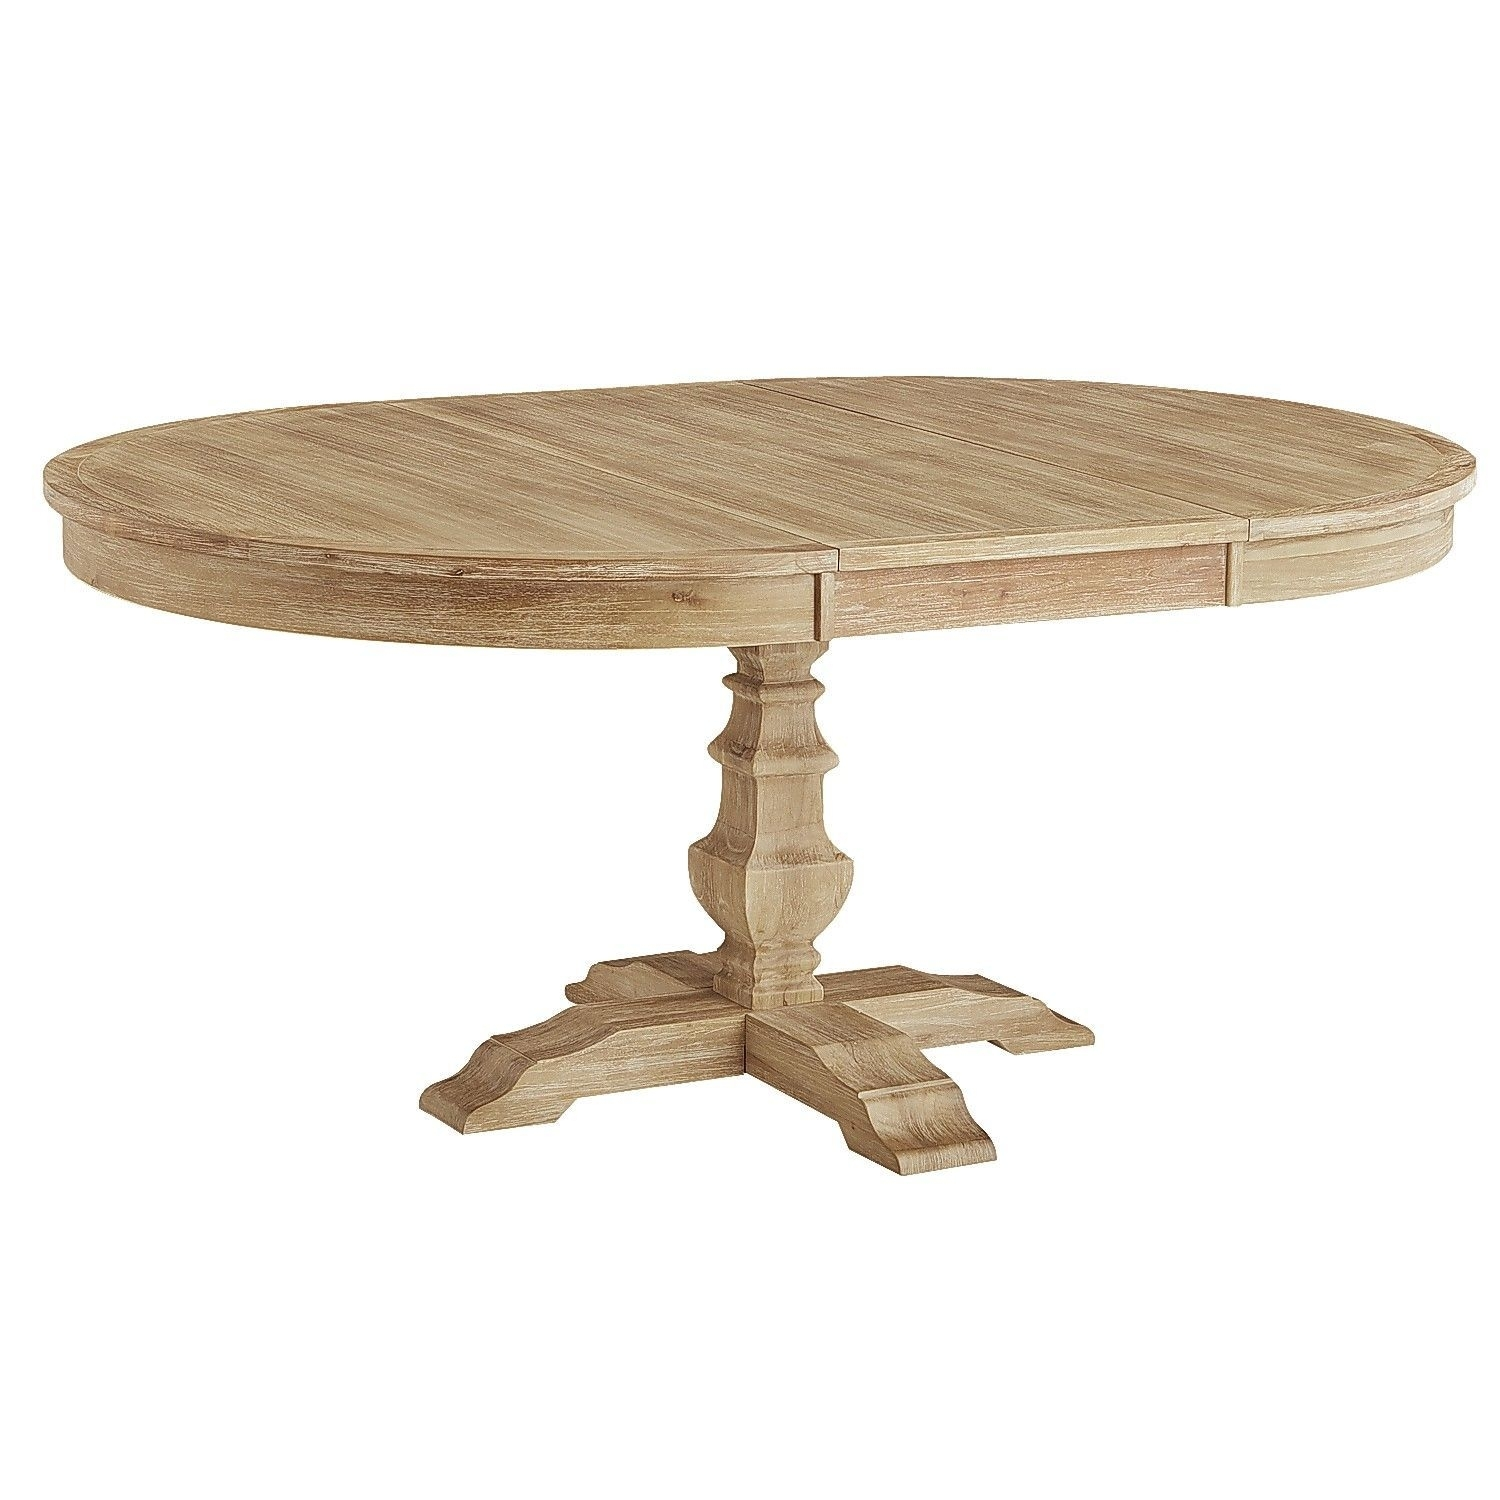 Bradding Natural Stonewash Round Extension Dining Table | Oval Within Most Current Caden Round Dining Tables (Image 2 of 20)